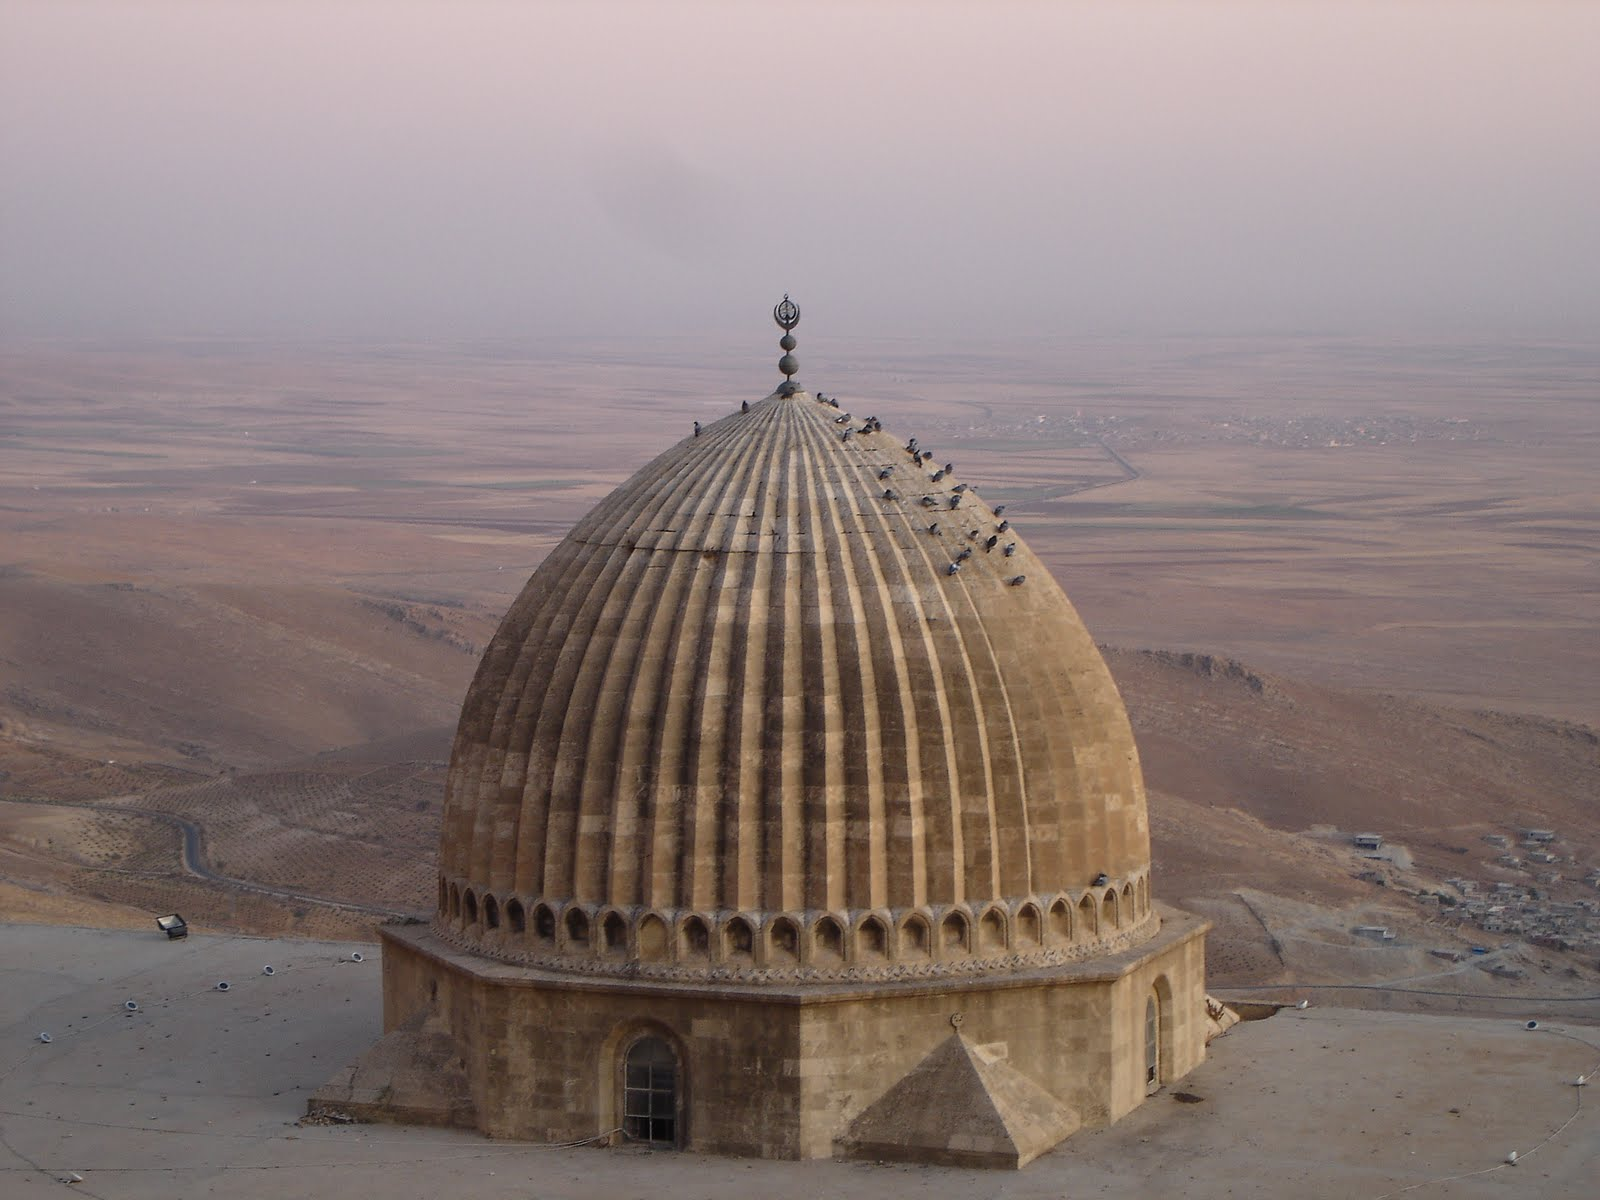 the ancient mesopotamian Babylon is one of the most famous cities of the ancient mesopotamian world and today can be found near the town of al-hillah in modern-day iraq.